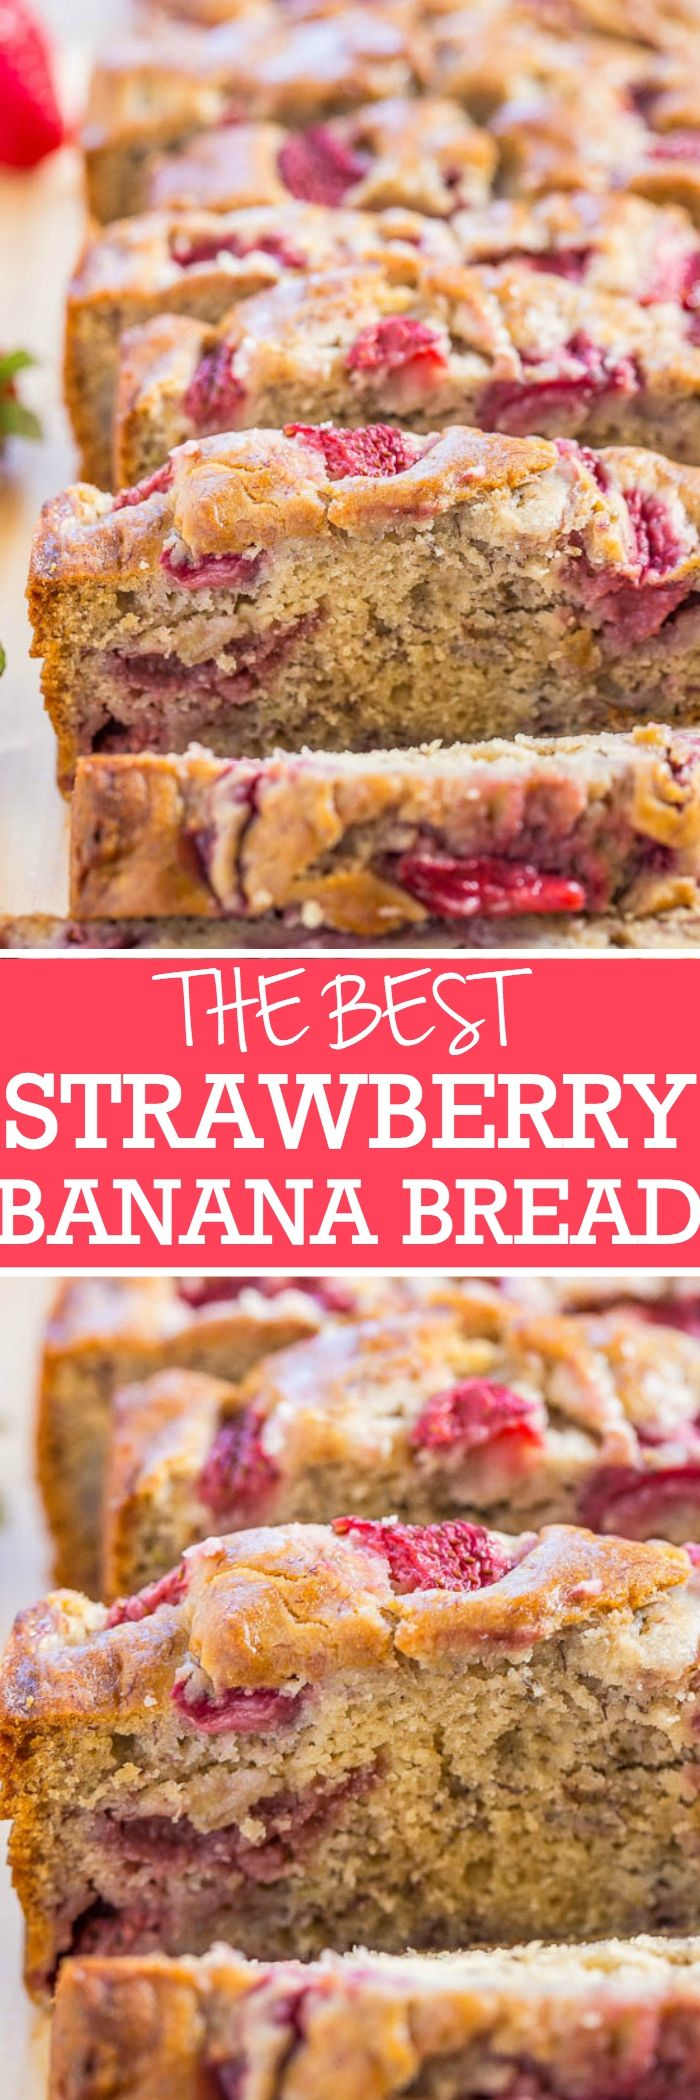 Strawberry & Banana Bread